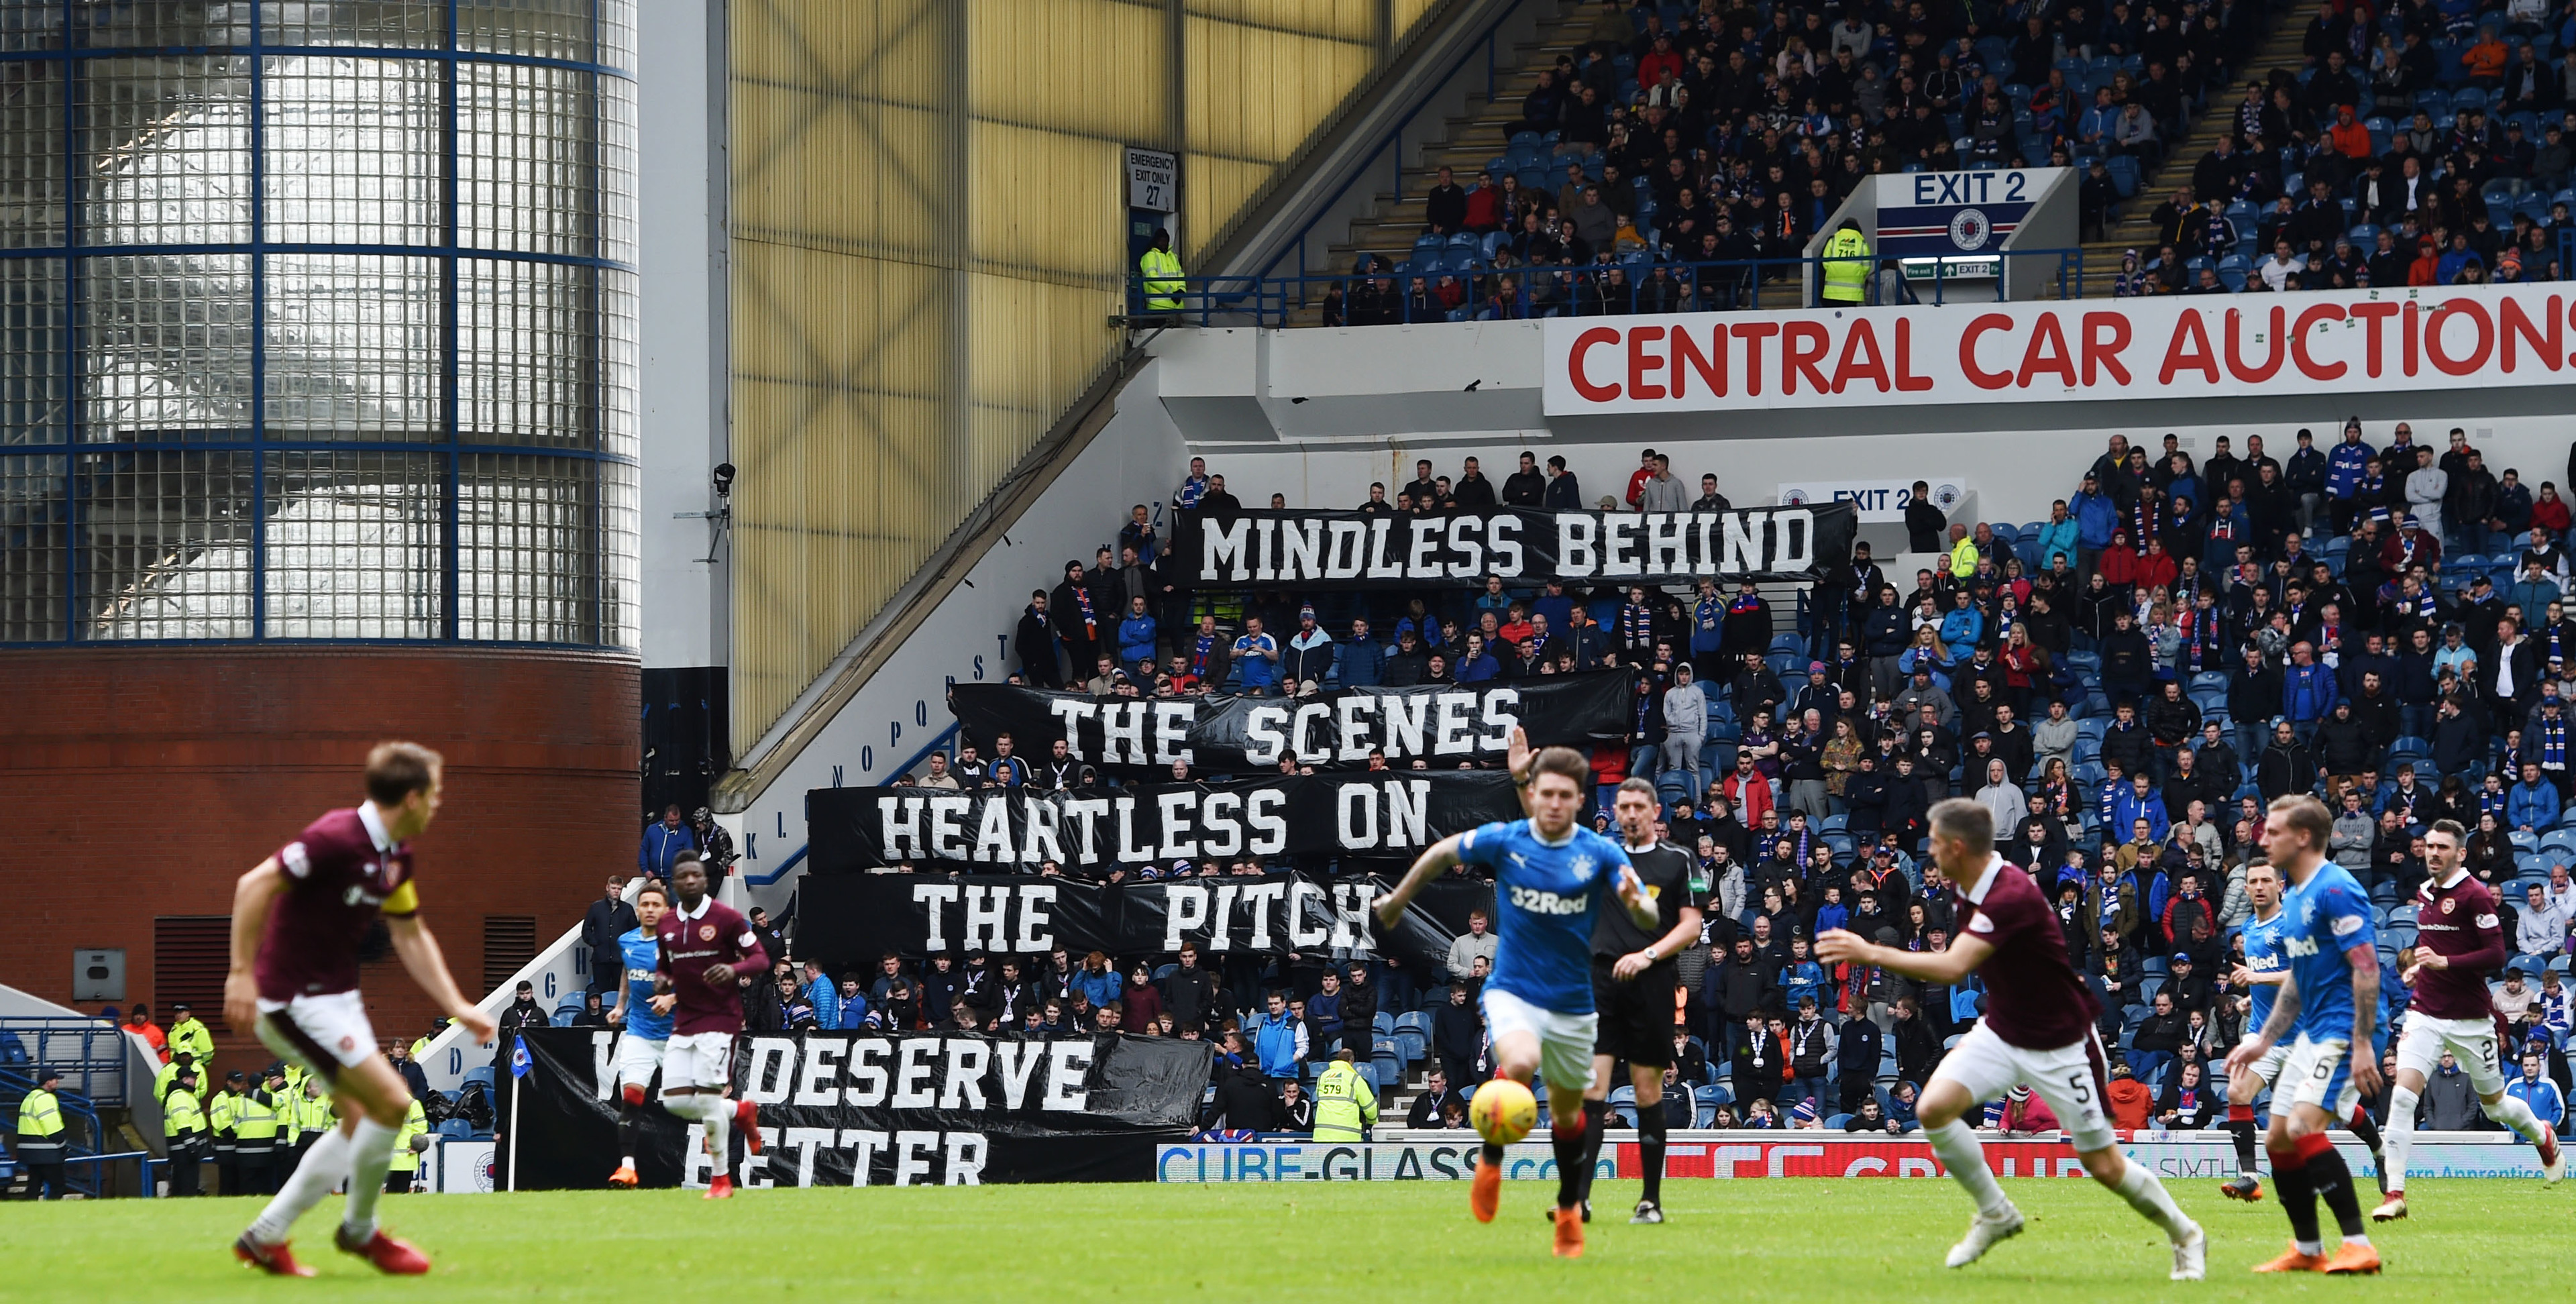 Rangers fans display a banner at the match against Hearts (SNS Group / Craig Foy)